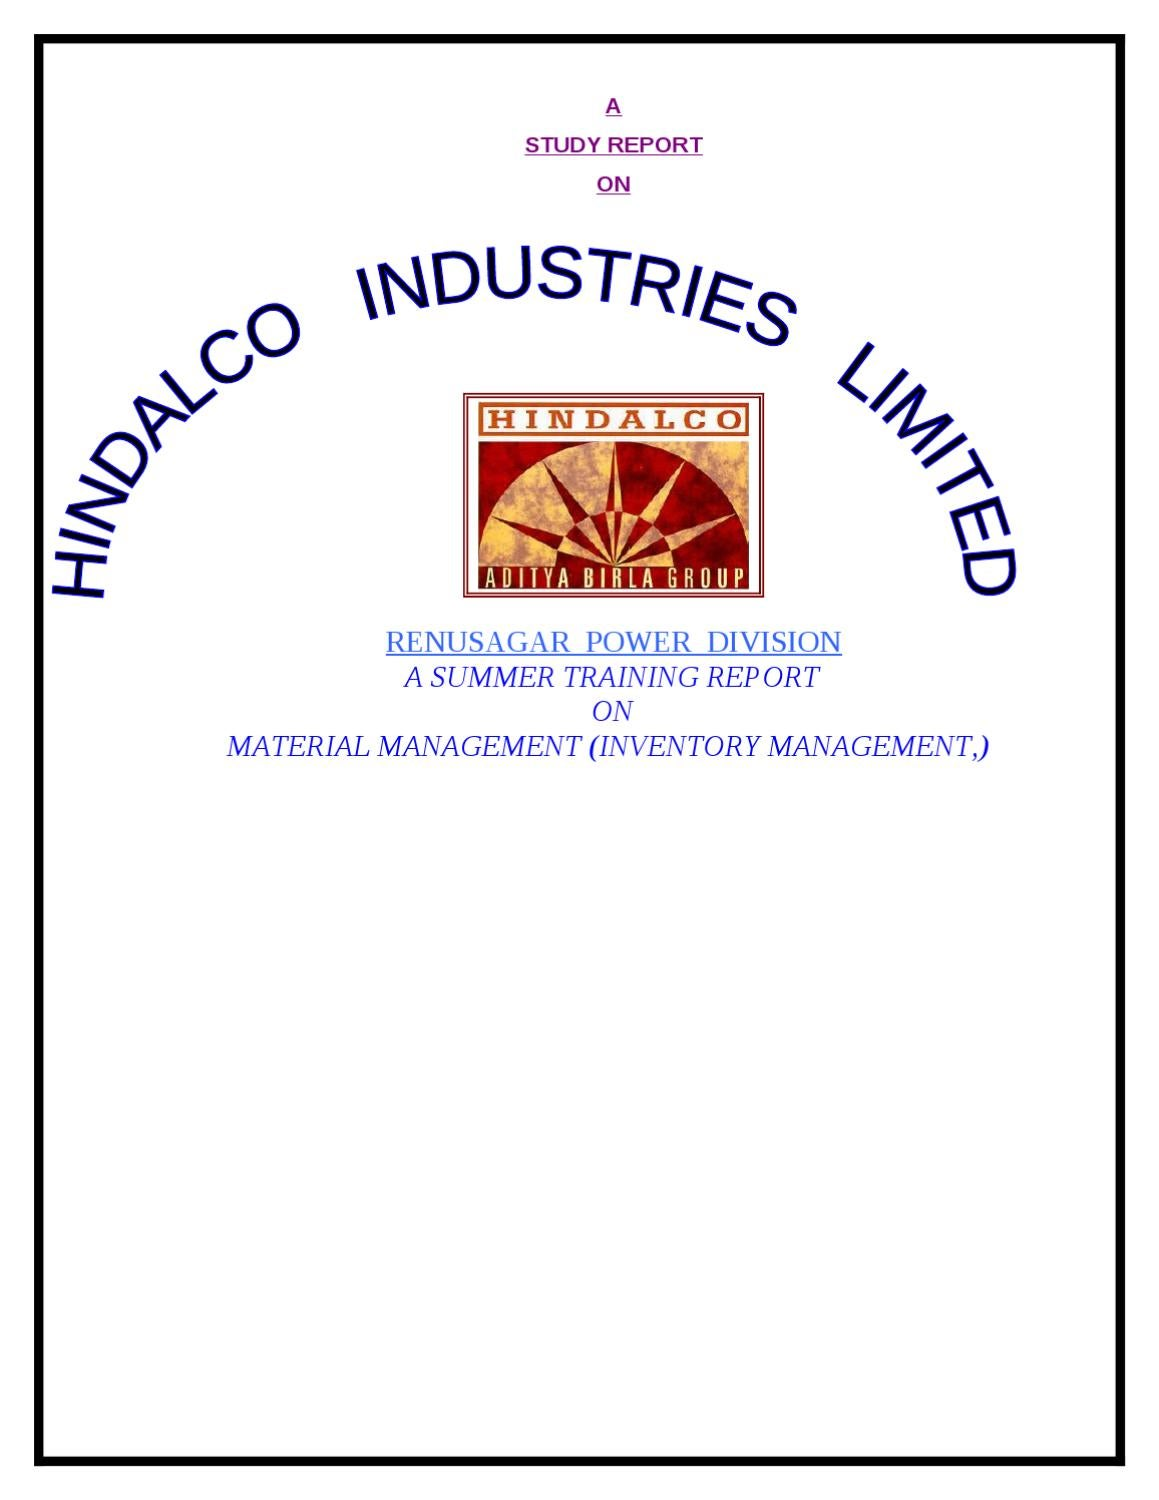 REPORT ON MATERIAL MANAGEMENT (INVENTORY MANAGEMENT,) AT